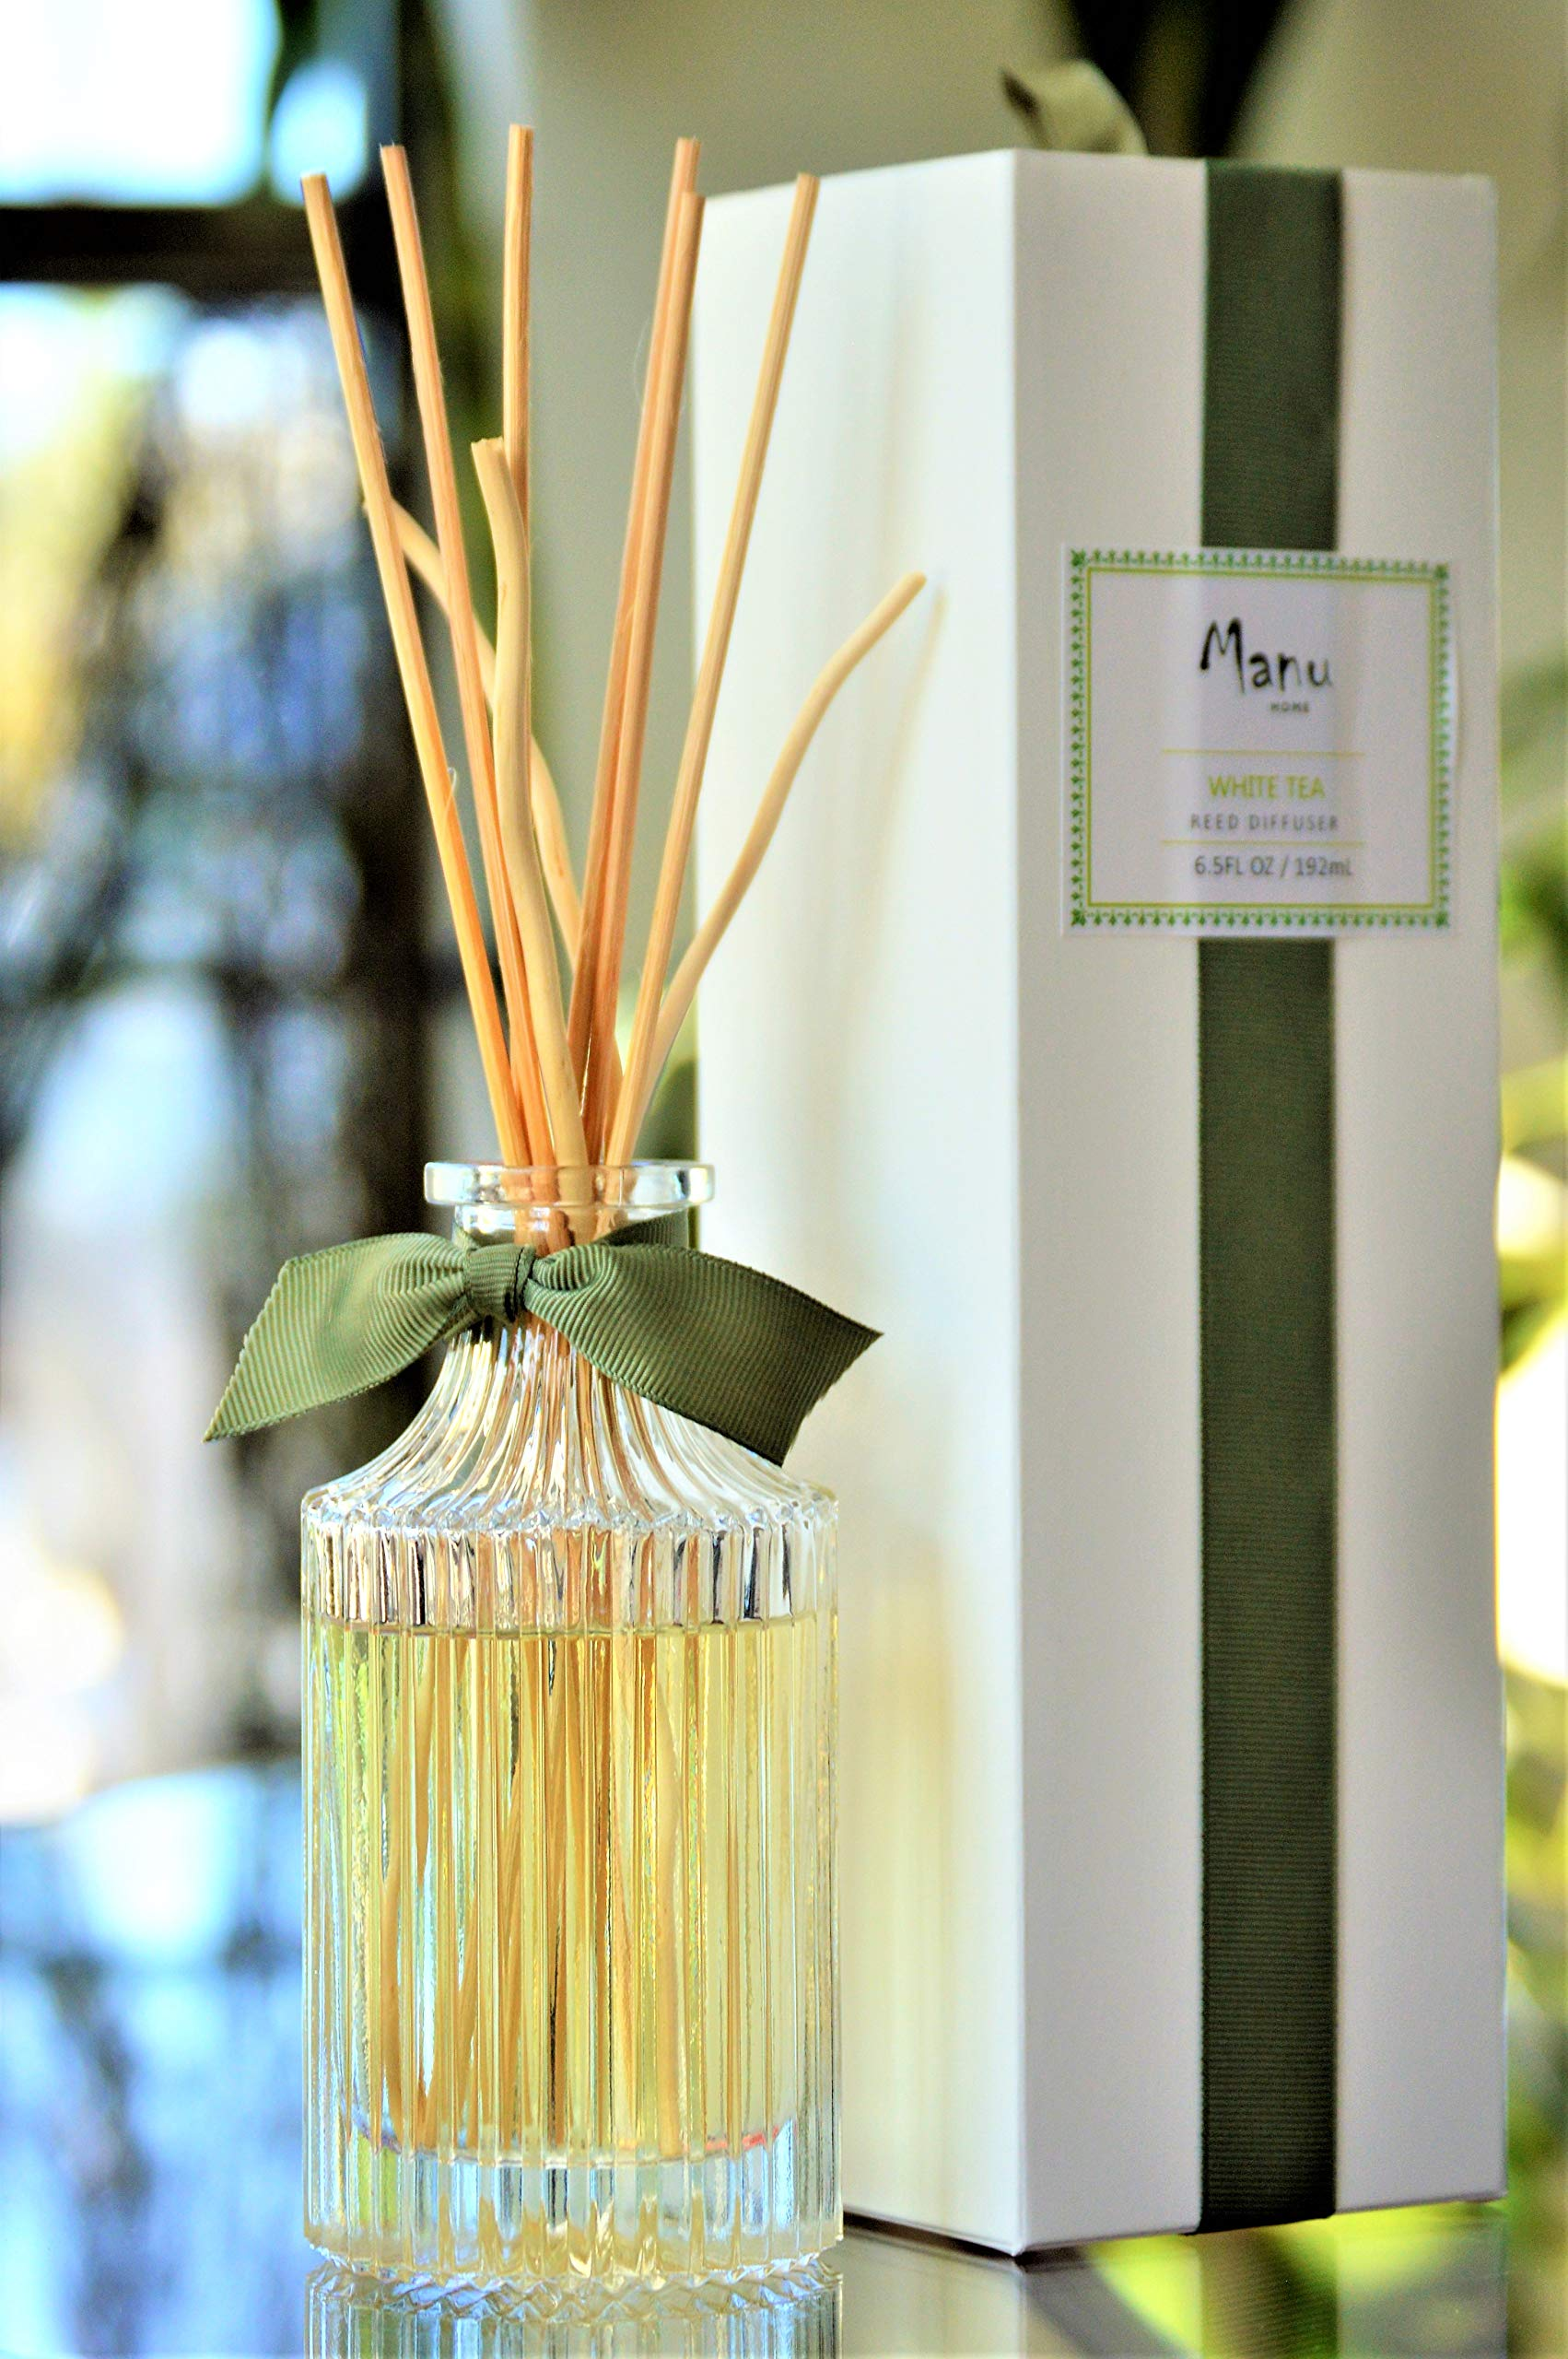 Manu Home White Tea Reed Diffuser Set - 6.5 oz + Natural Reed Diffuser Sticks | Aromatherapy Oils | Subtle Notes of Woody Cedar and Vanilla | Made in USA by Manu Home (Image #1)